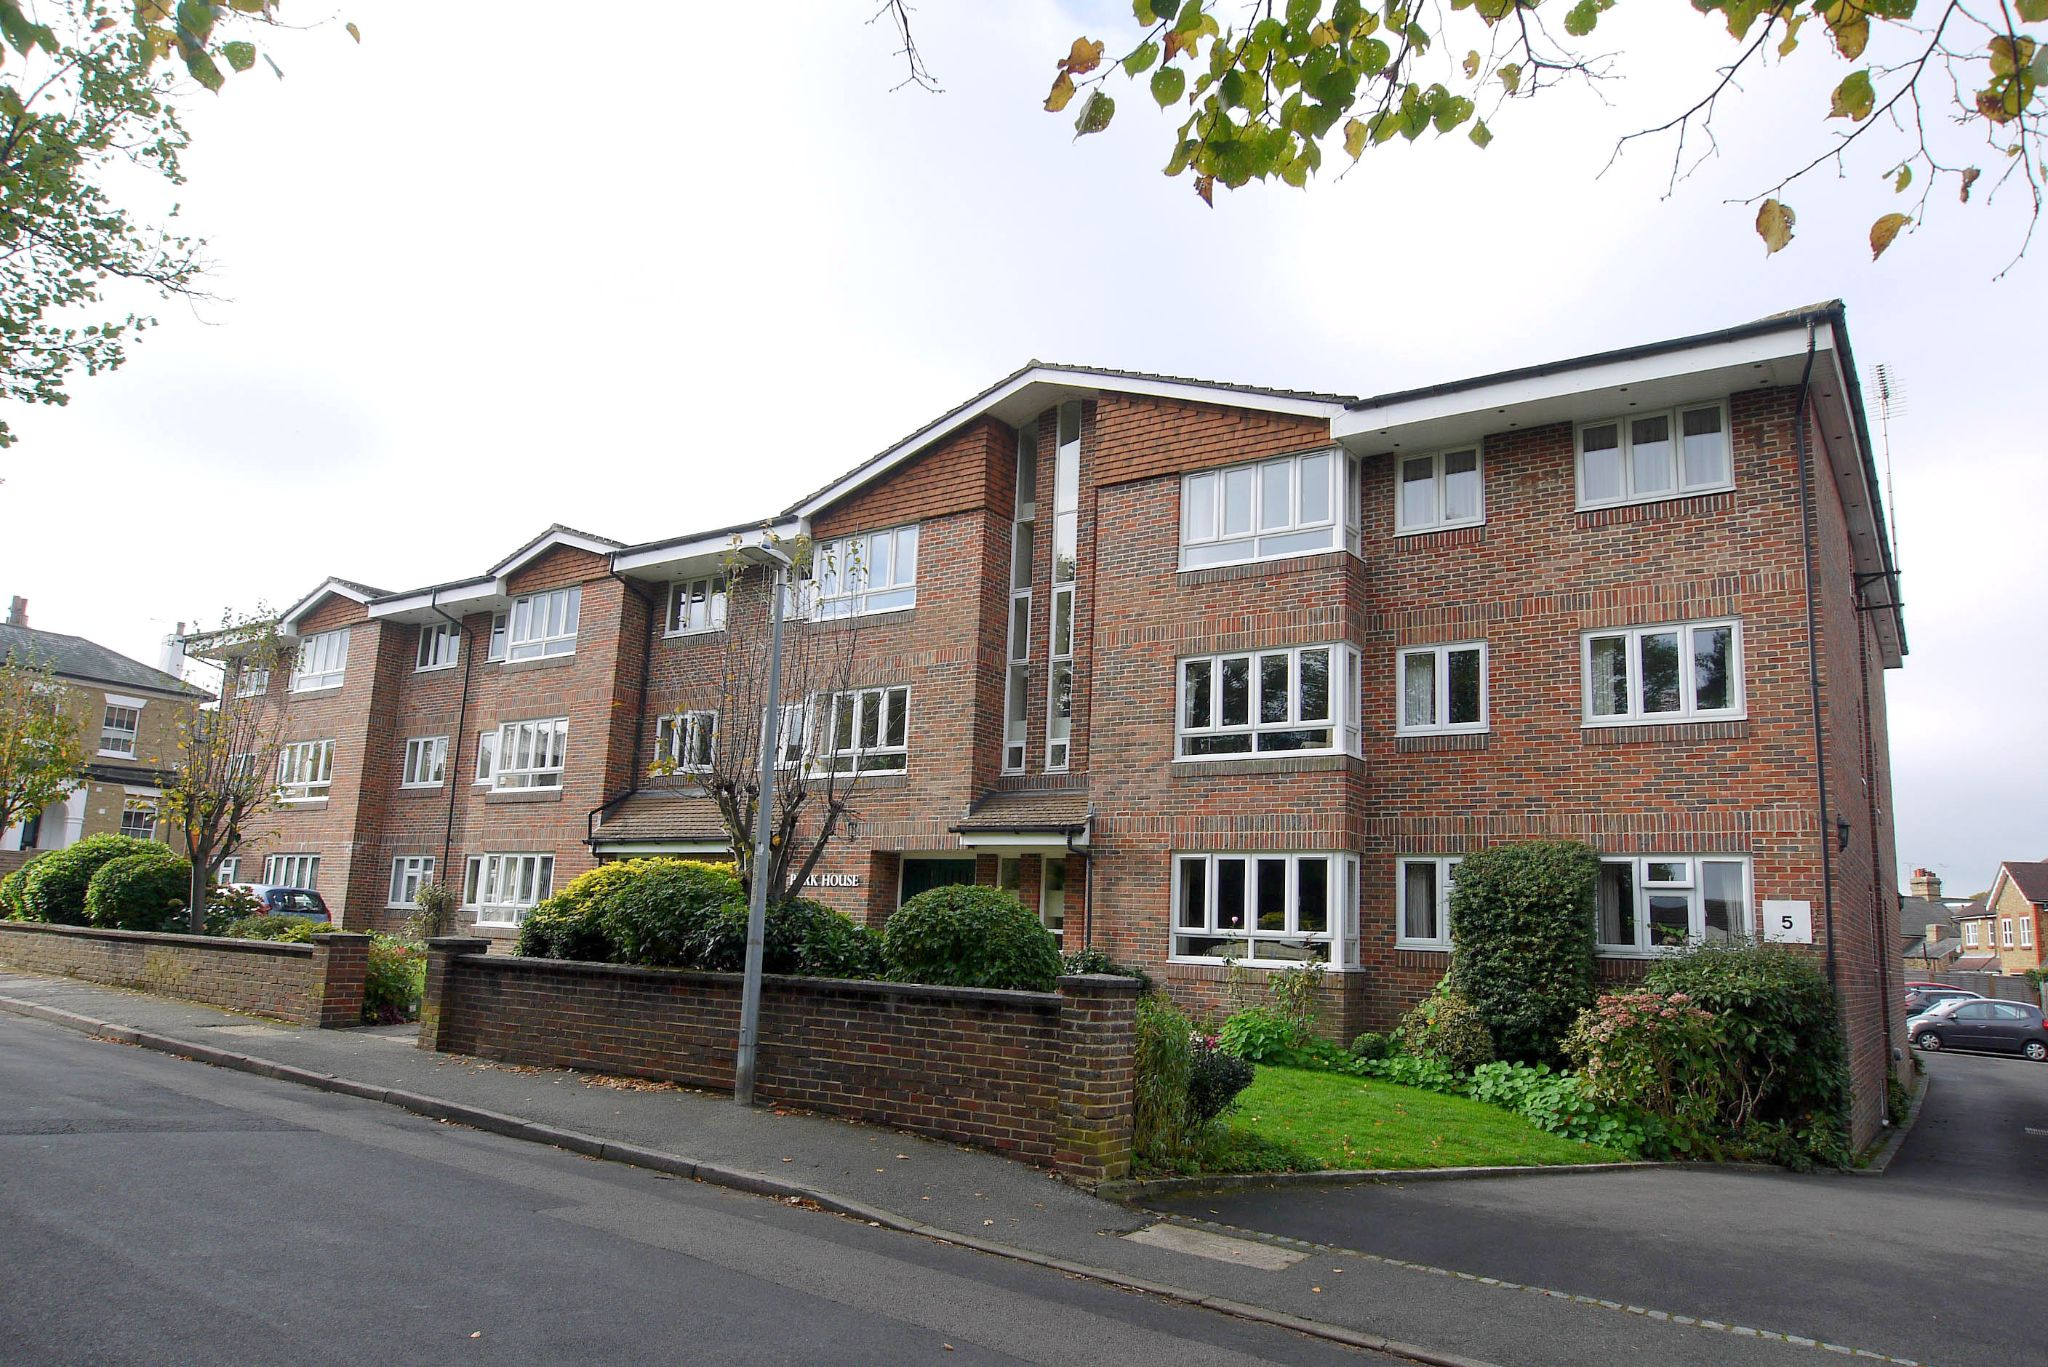 1 bedroom ground floor flat/apartment Sale Agreed in Sevenoaks - Photograph 1